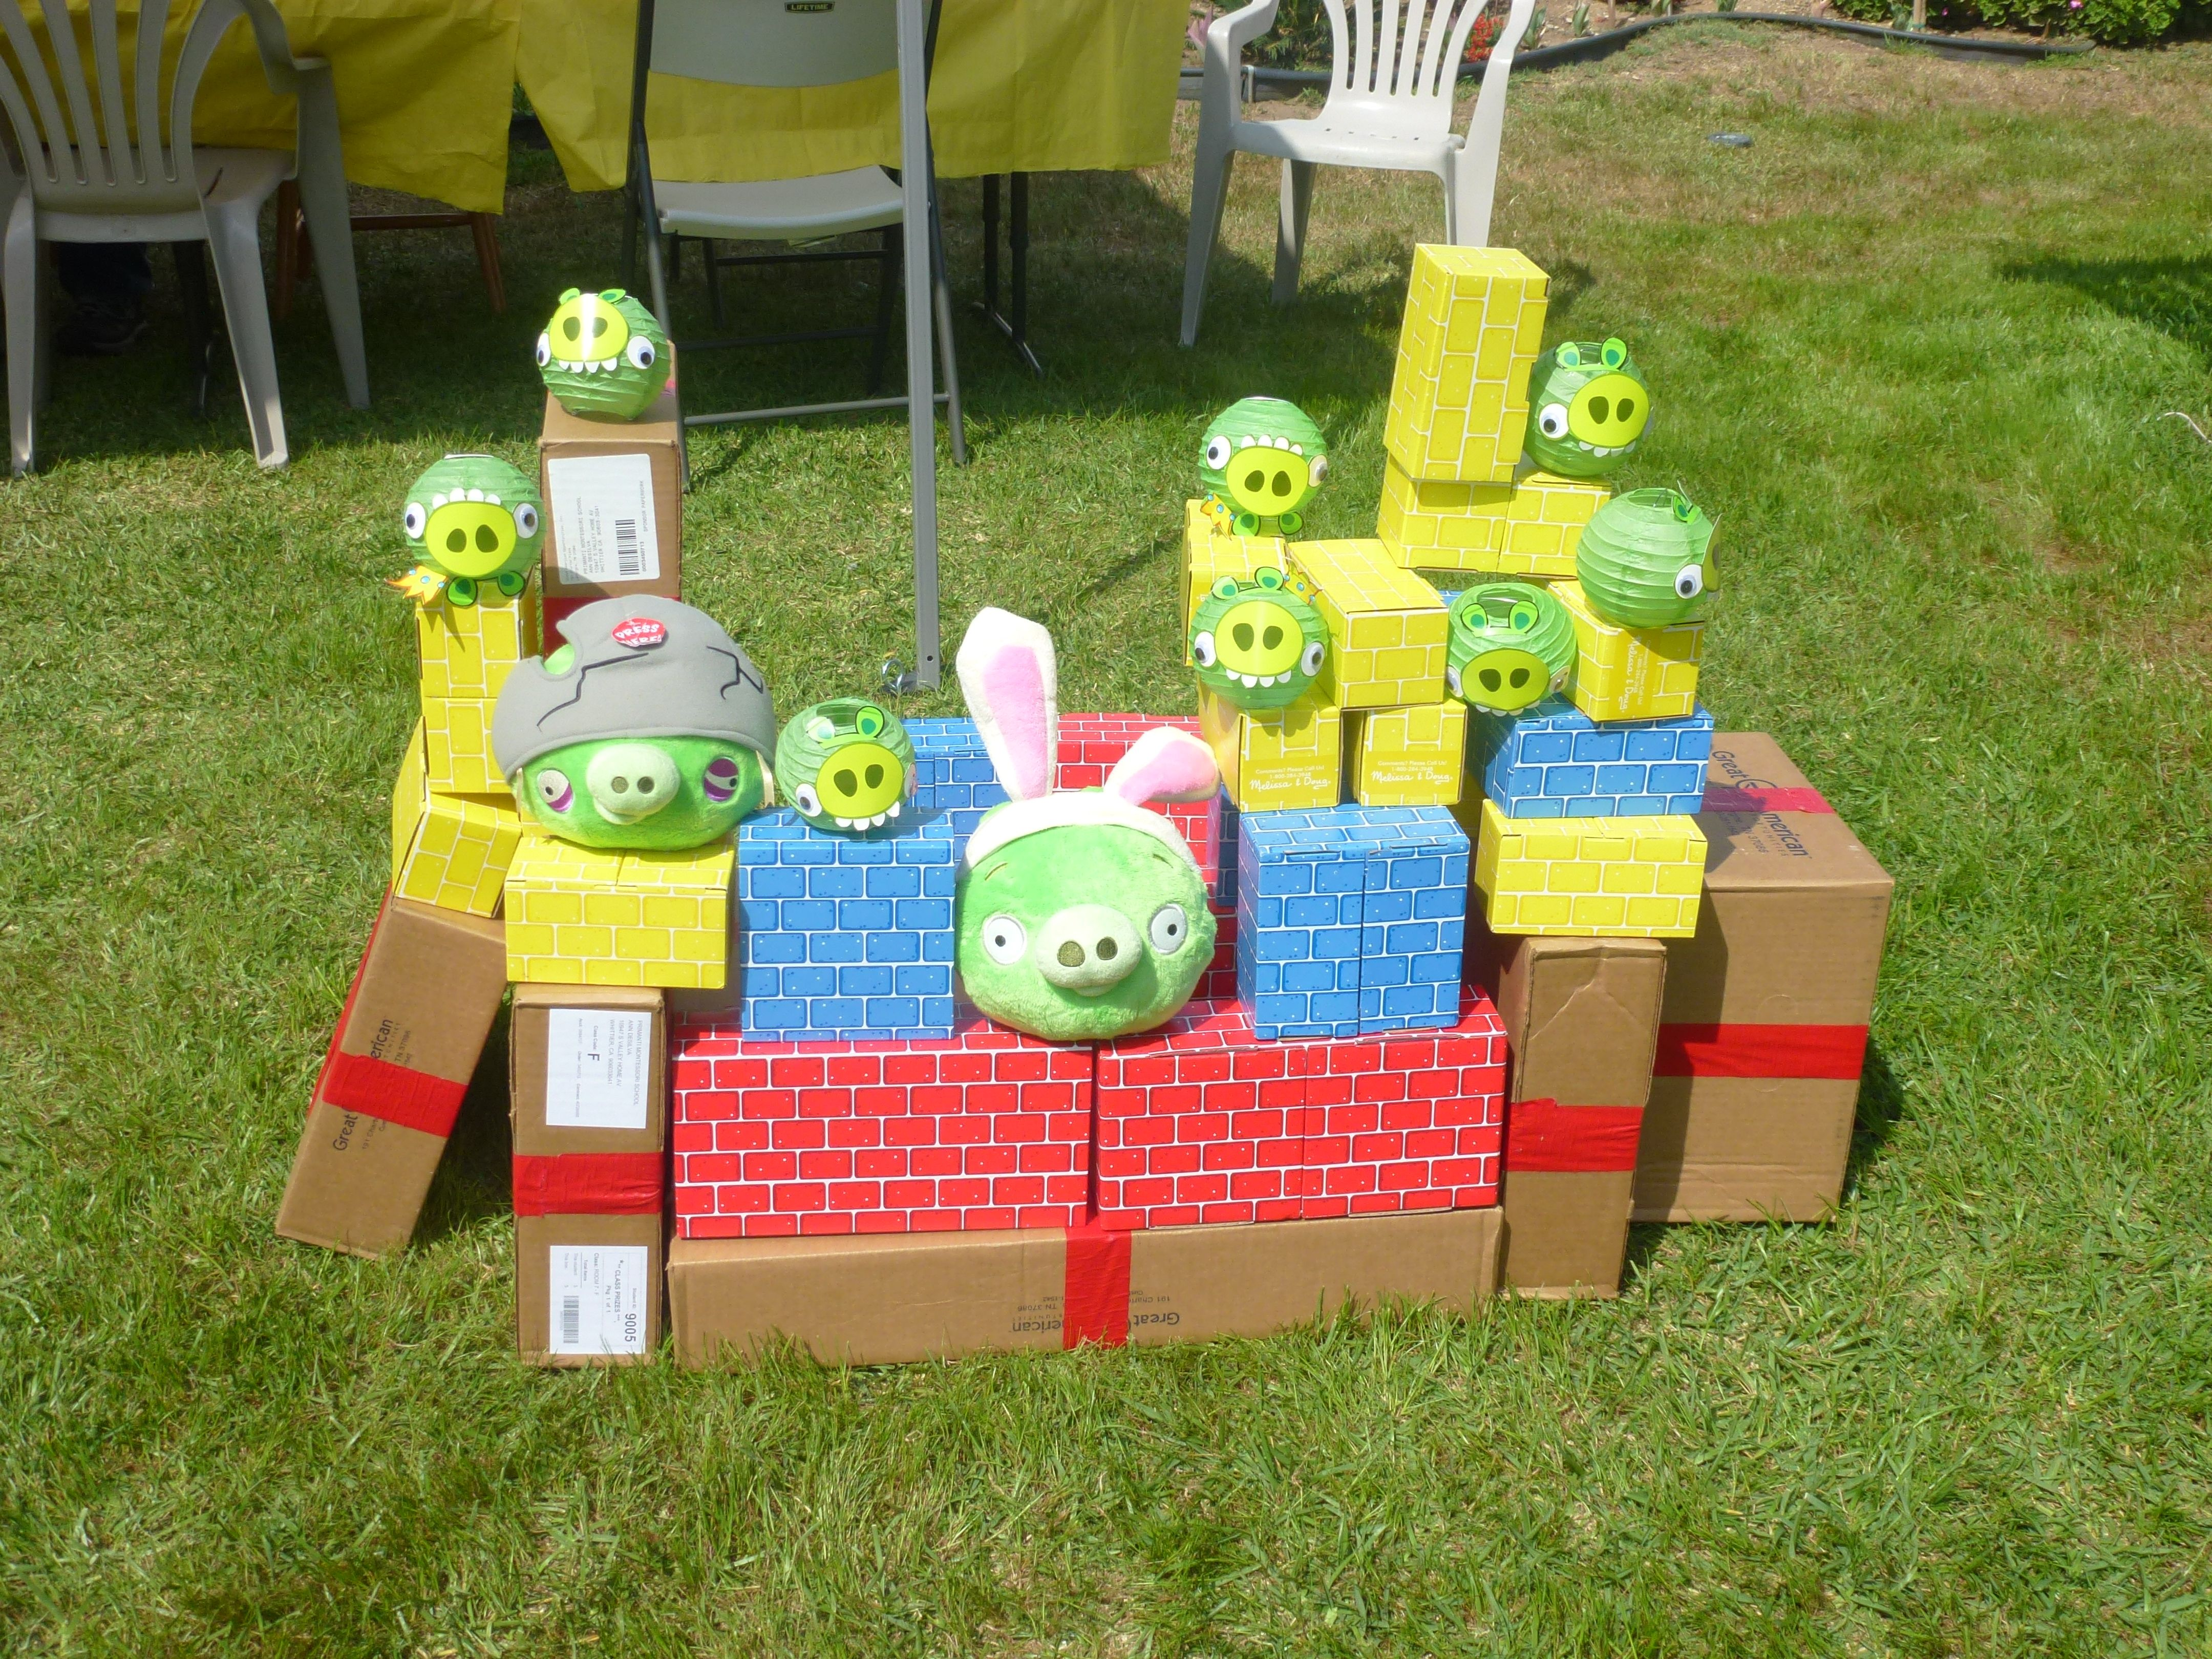 Angry Birds Brick life size game